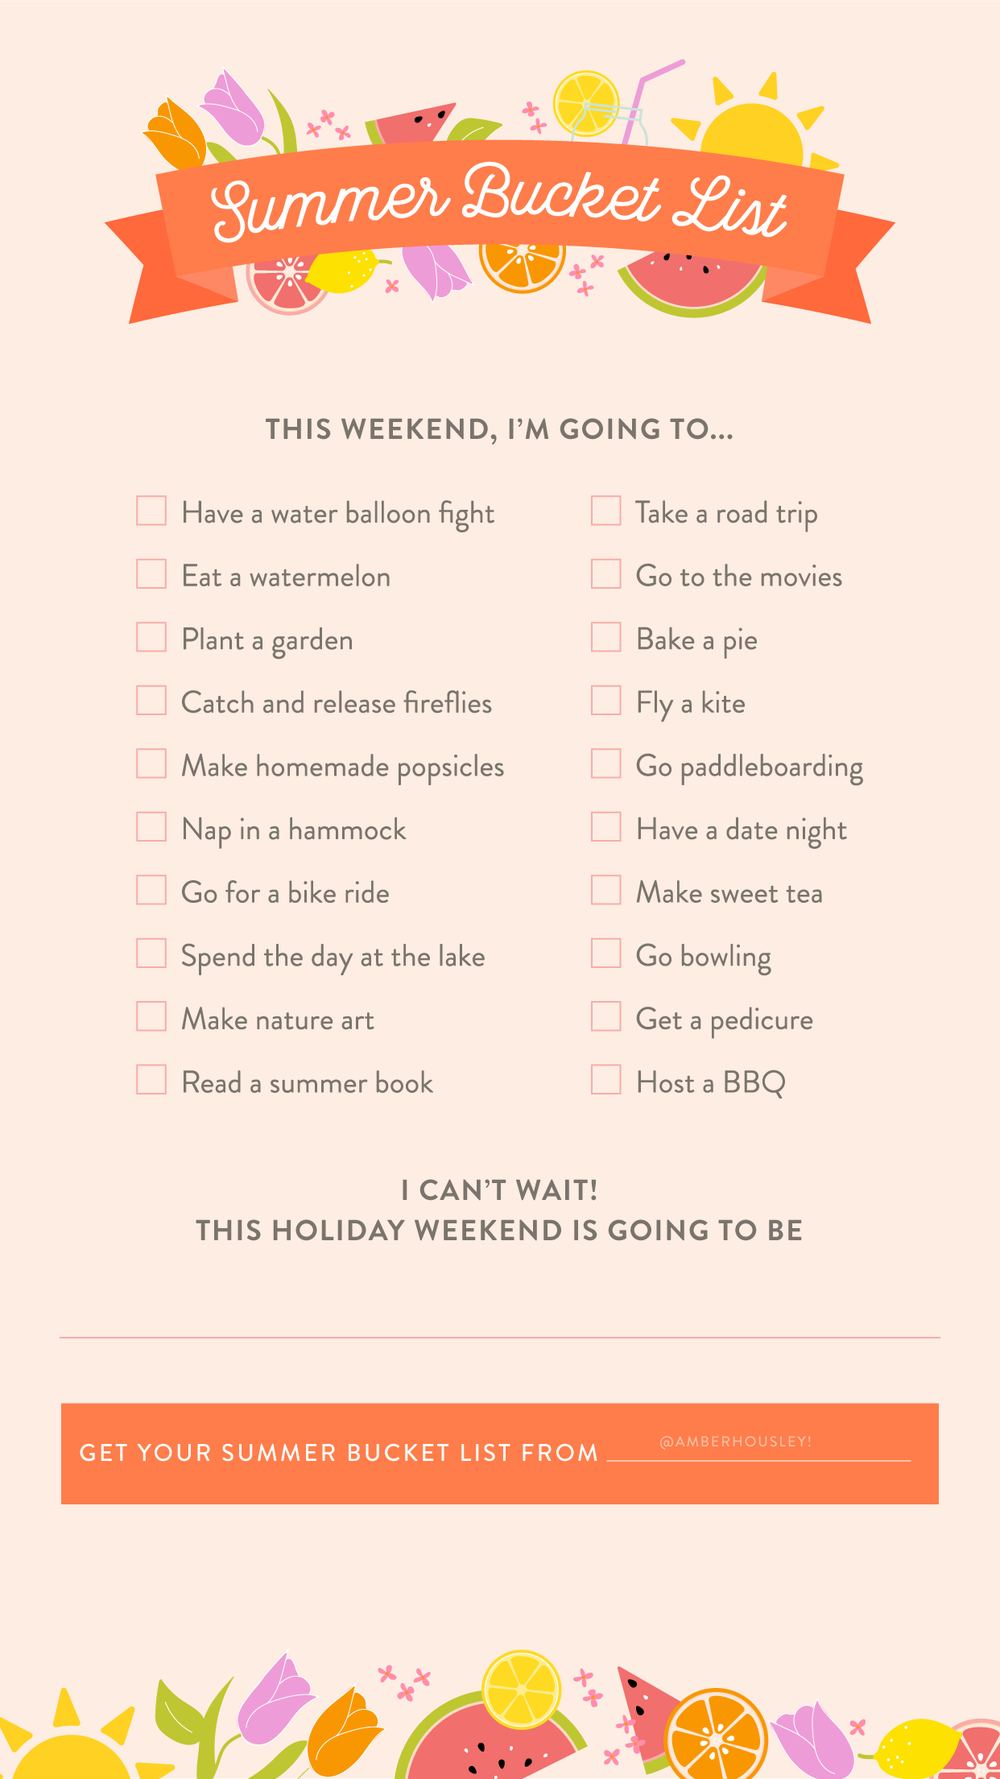 instagram-summer-bucket-list.png